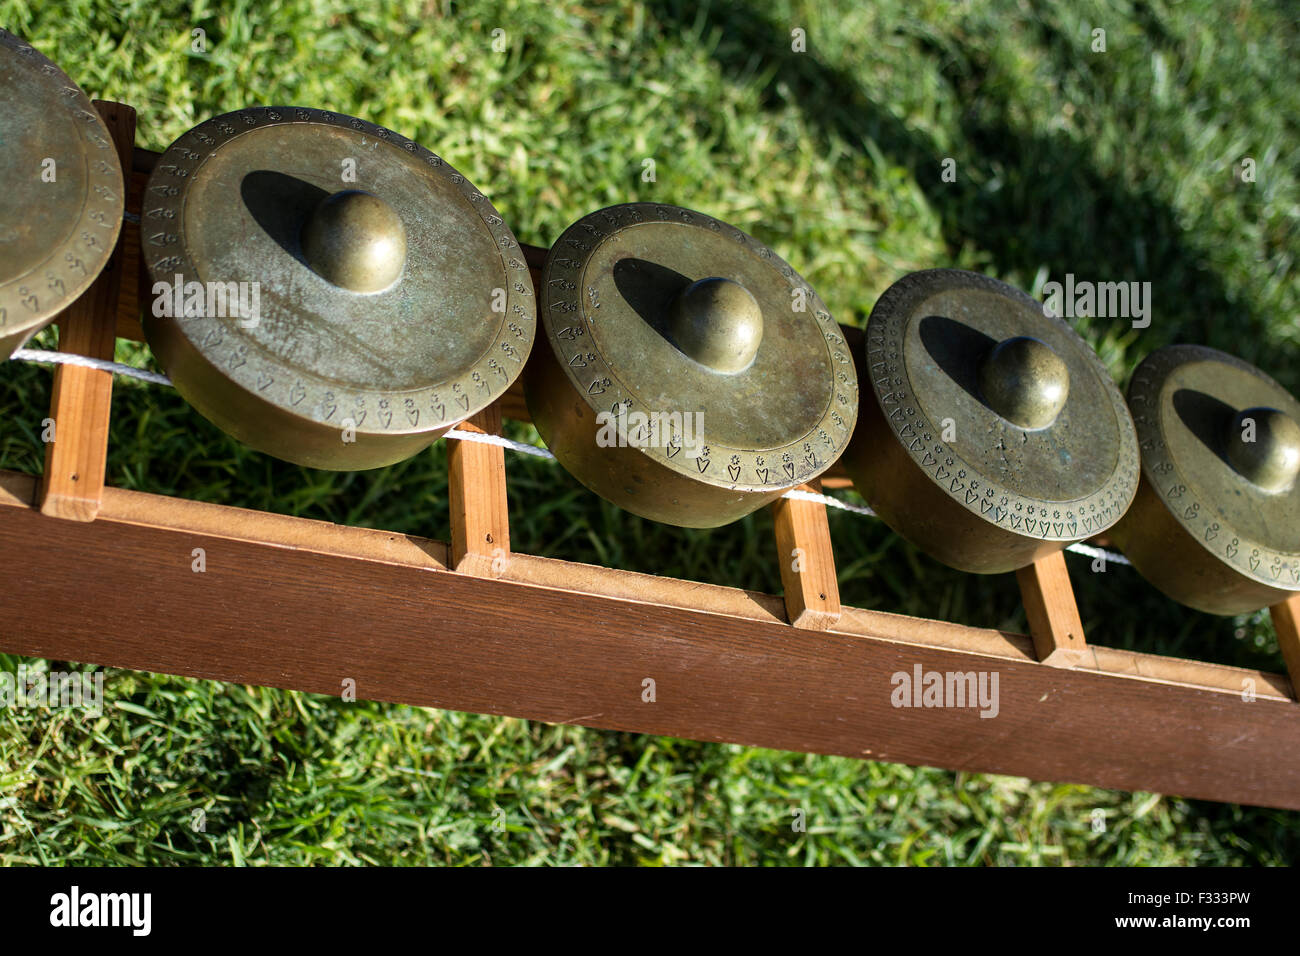 A row of gongs with the modern term being Kulintang. - Stock Image